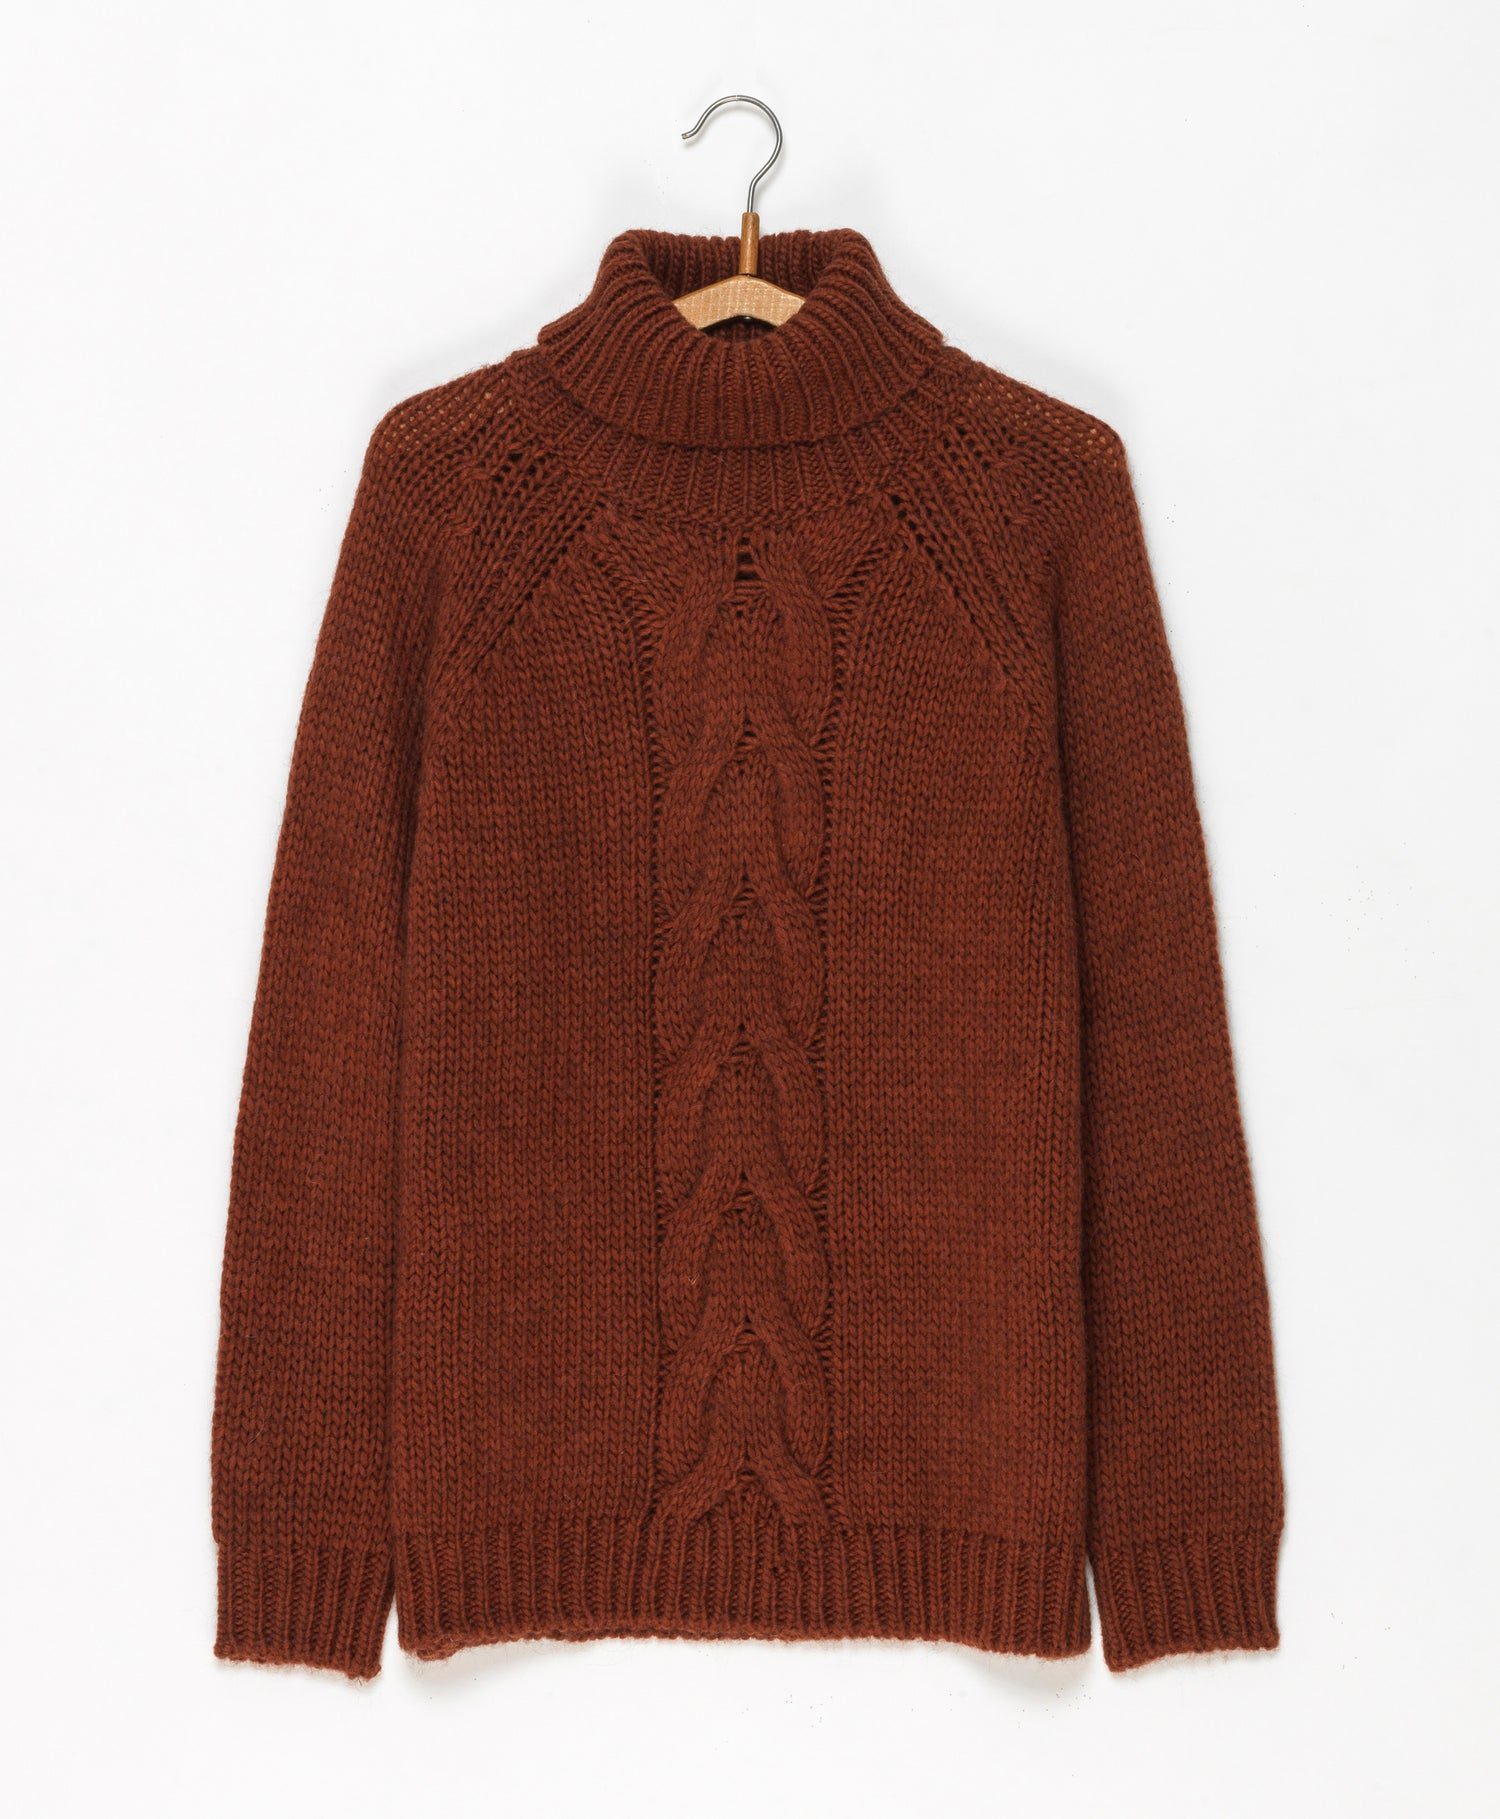 Image of Pull col roulé torsade THELMA 169€ -60%